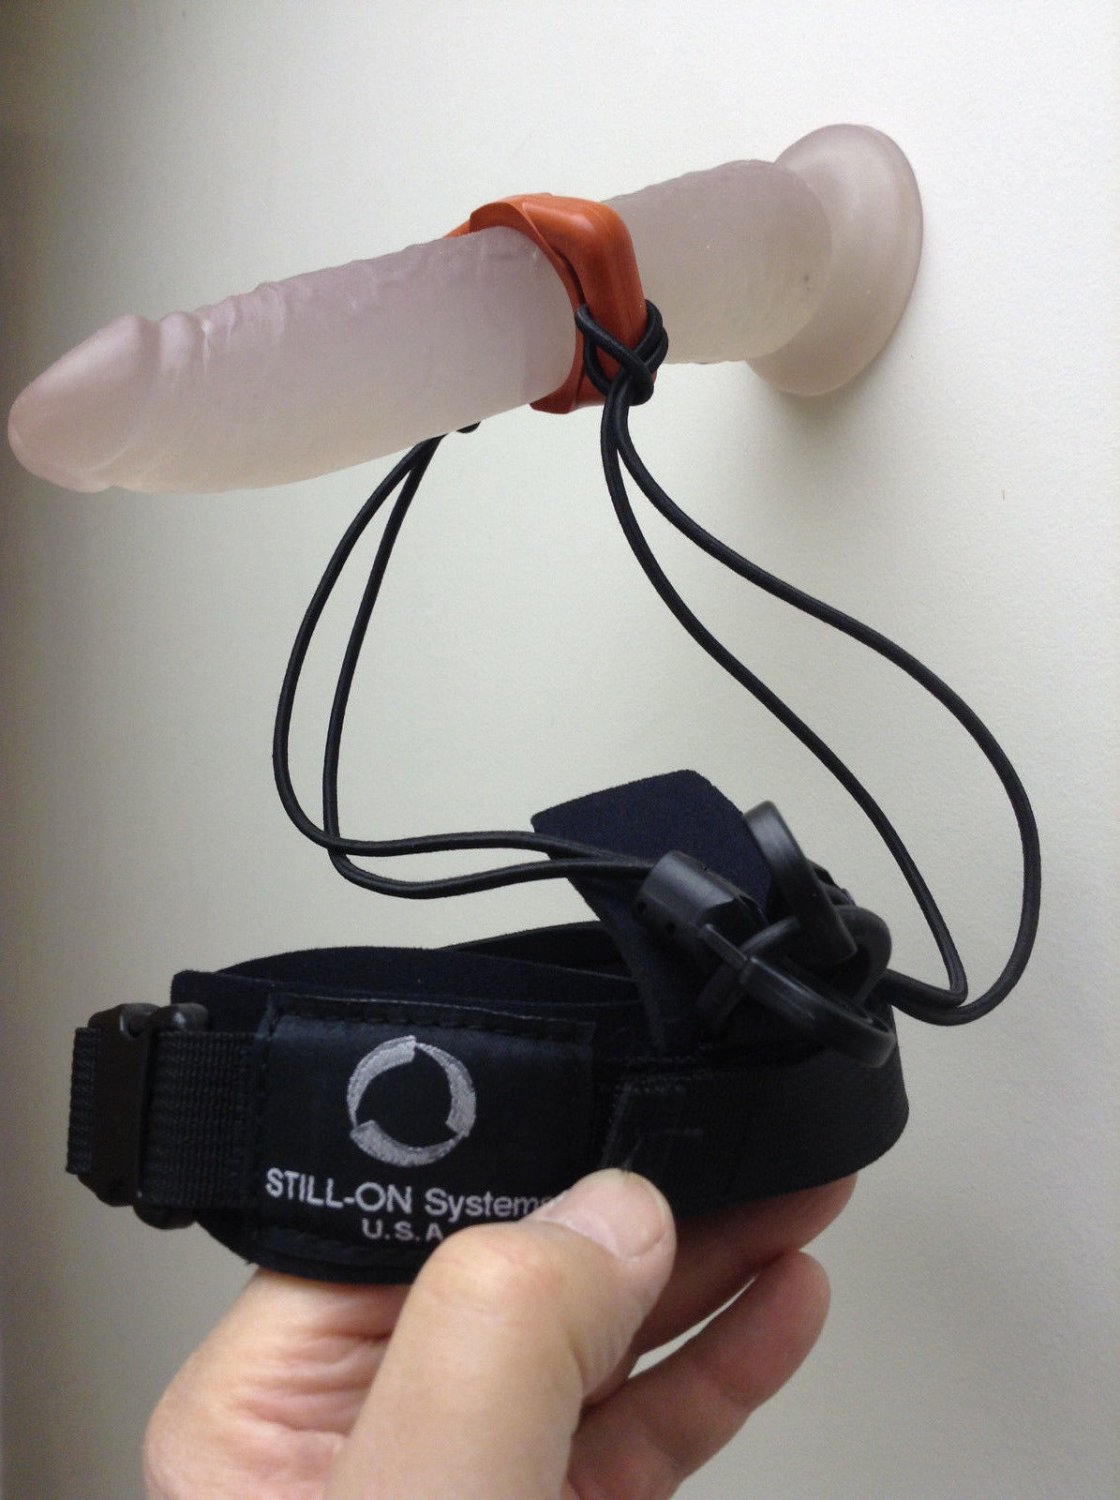 Four Silicone's Shaft Stretcher Extender For Male Enhancement and Penis Enlargement